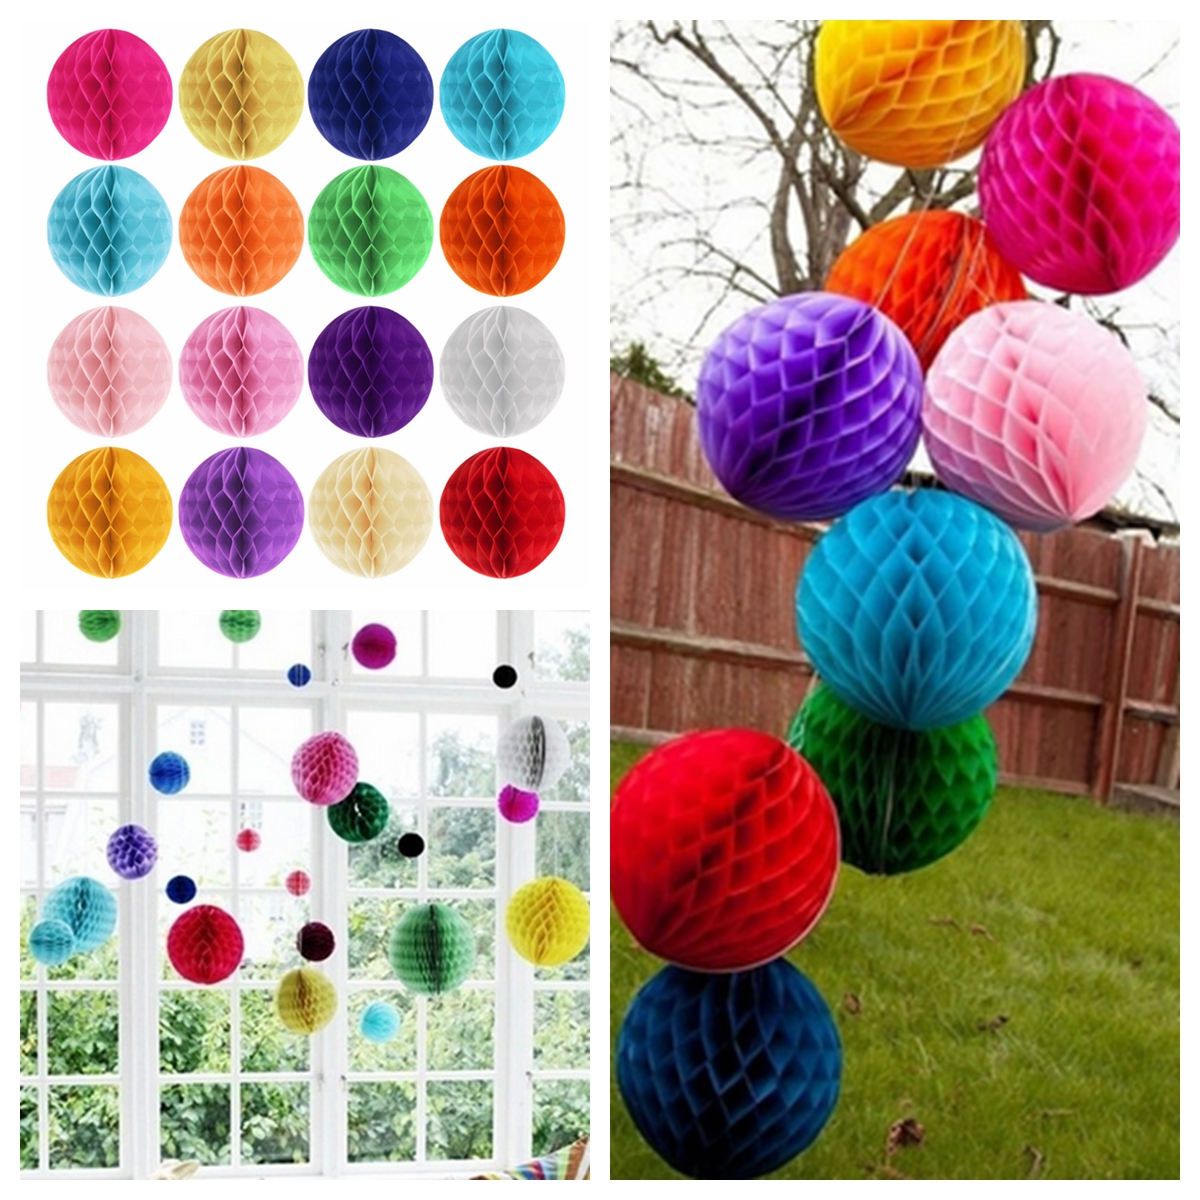 10CM 4'' Tissue Paper Pom Poms Honeycomb Ball Lantern Wedding Party Home Table Decor